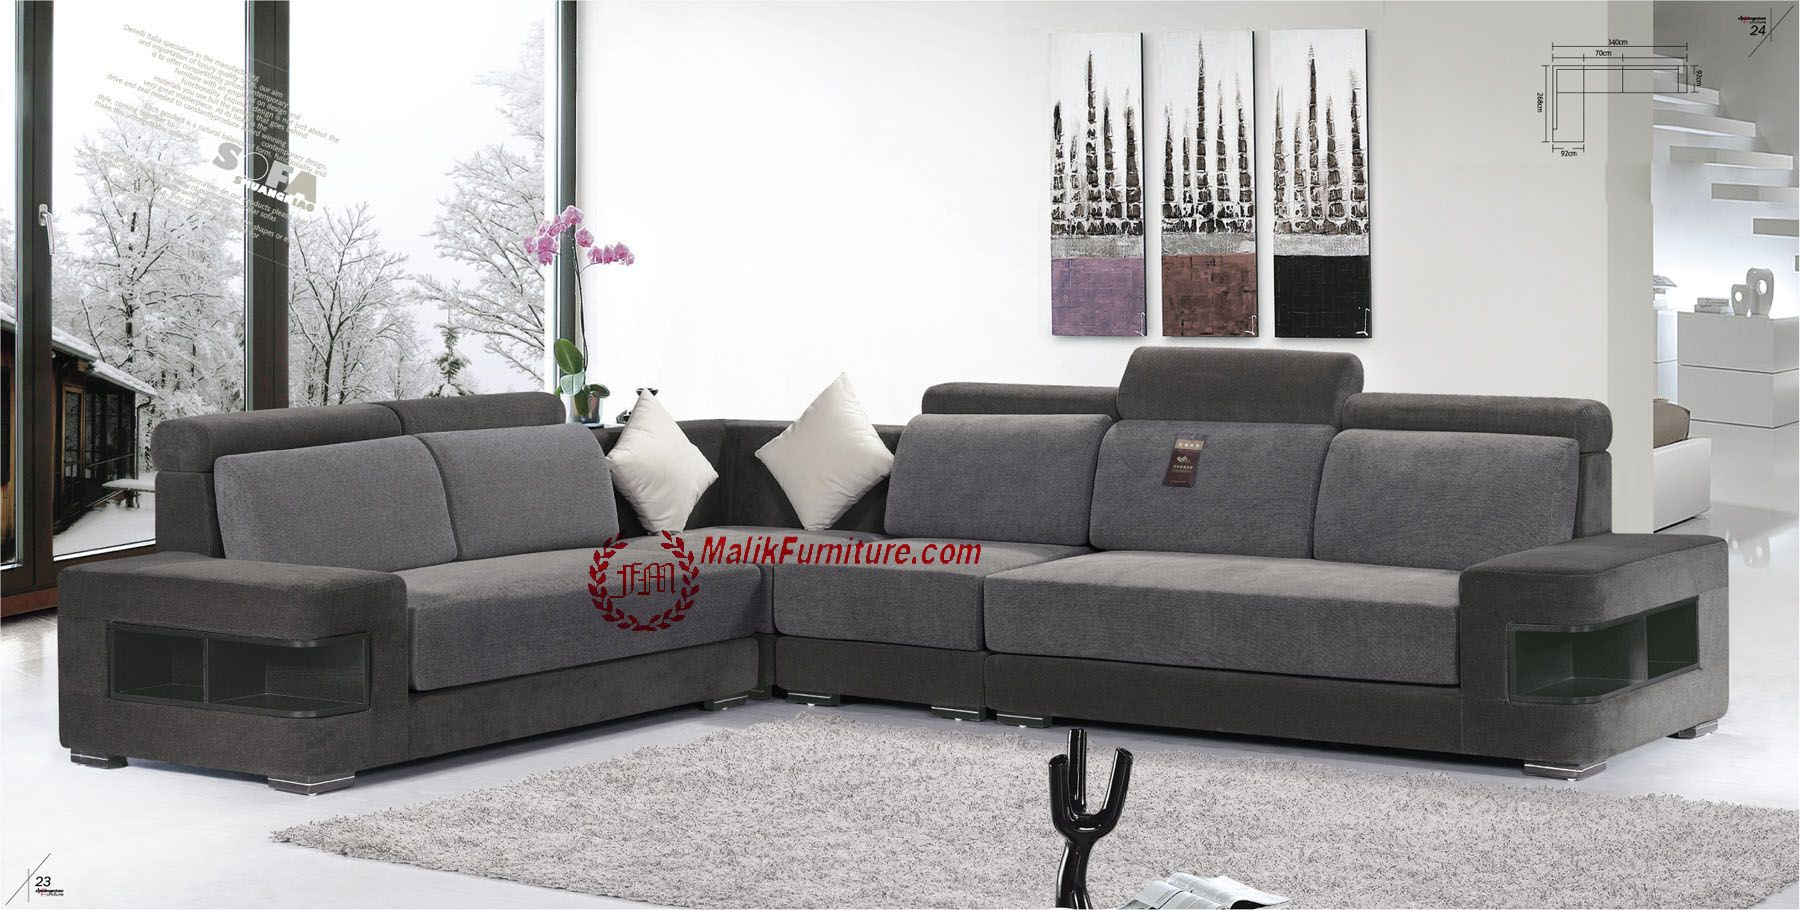 sofa corner sofa modern design corner malik furniture rh pinterest com modern corner sofa leather modern corner sofa leather